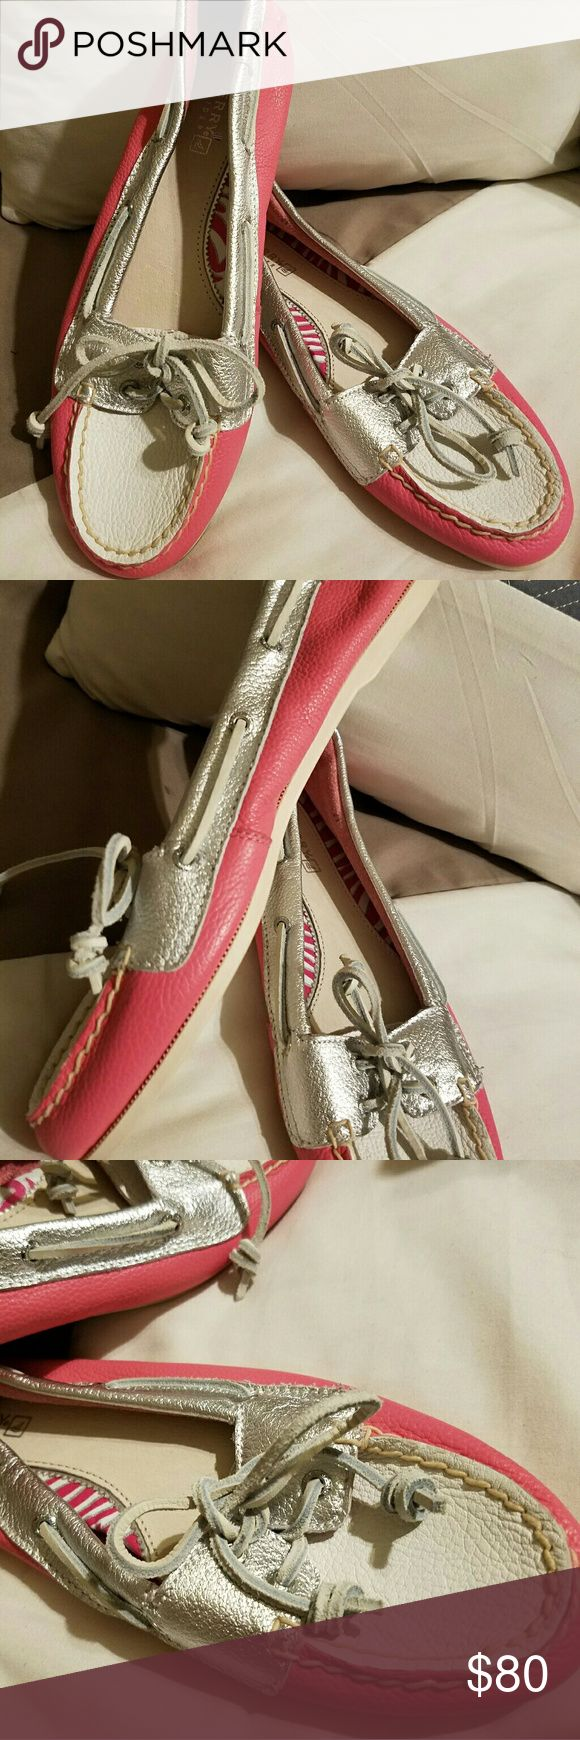 Sperry Top-Siders NWOT White and pink genuine leather loafers. Cushioned insole. Shoes are in excellent condition.  Dirty sole just from where stored. Sperry Top-Sider Shoes Flats & Loafers